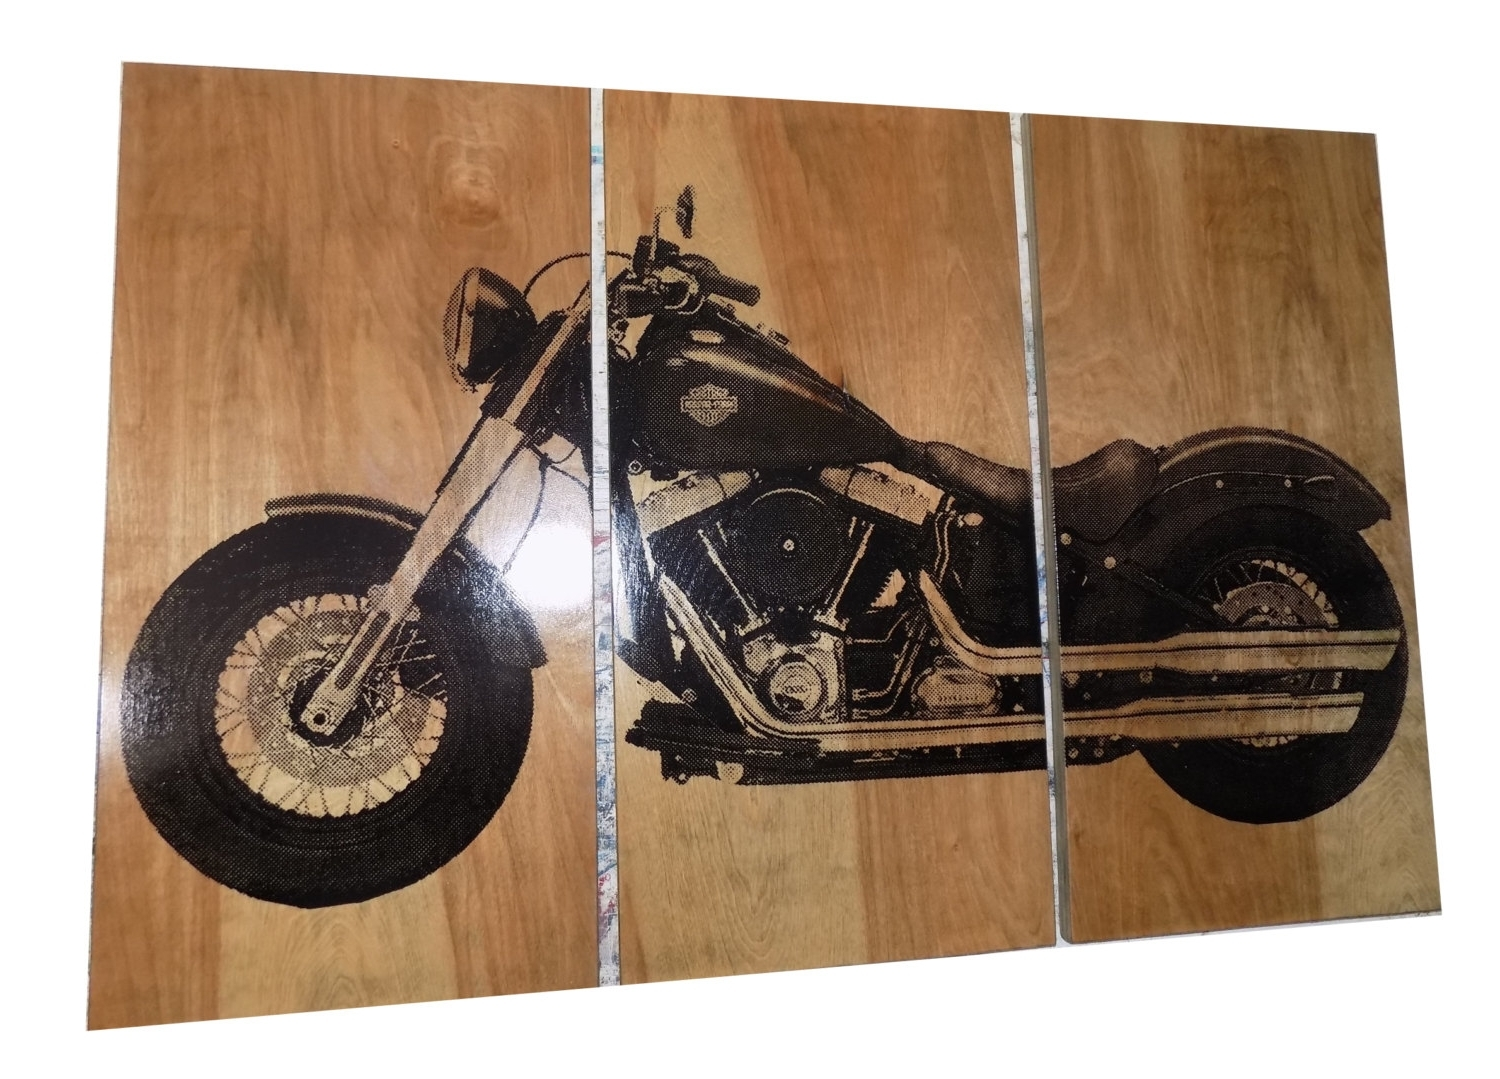 Most Up To Date Harley Davidson Soft Tail Nice Harley Davidson Wall Art – Prix Dalle Pertaining To Harley Davidson Wall Art (View 12 of 15)